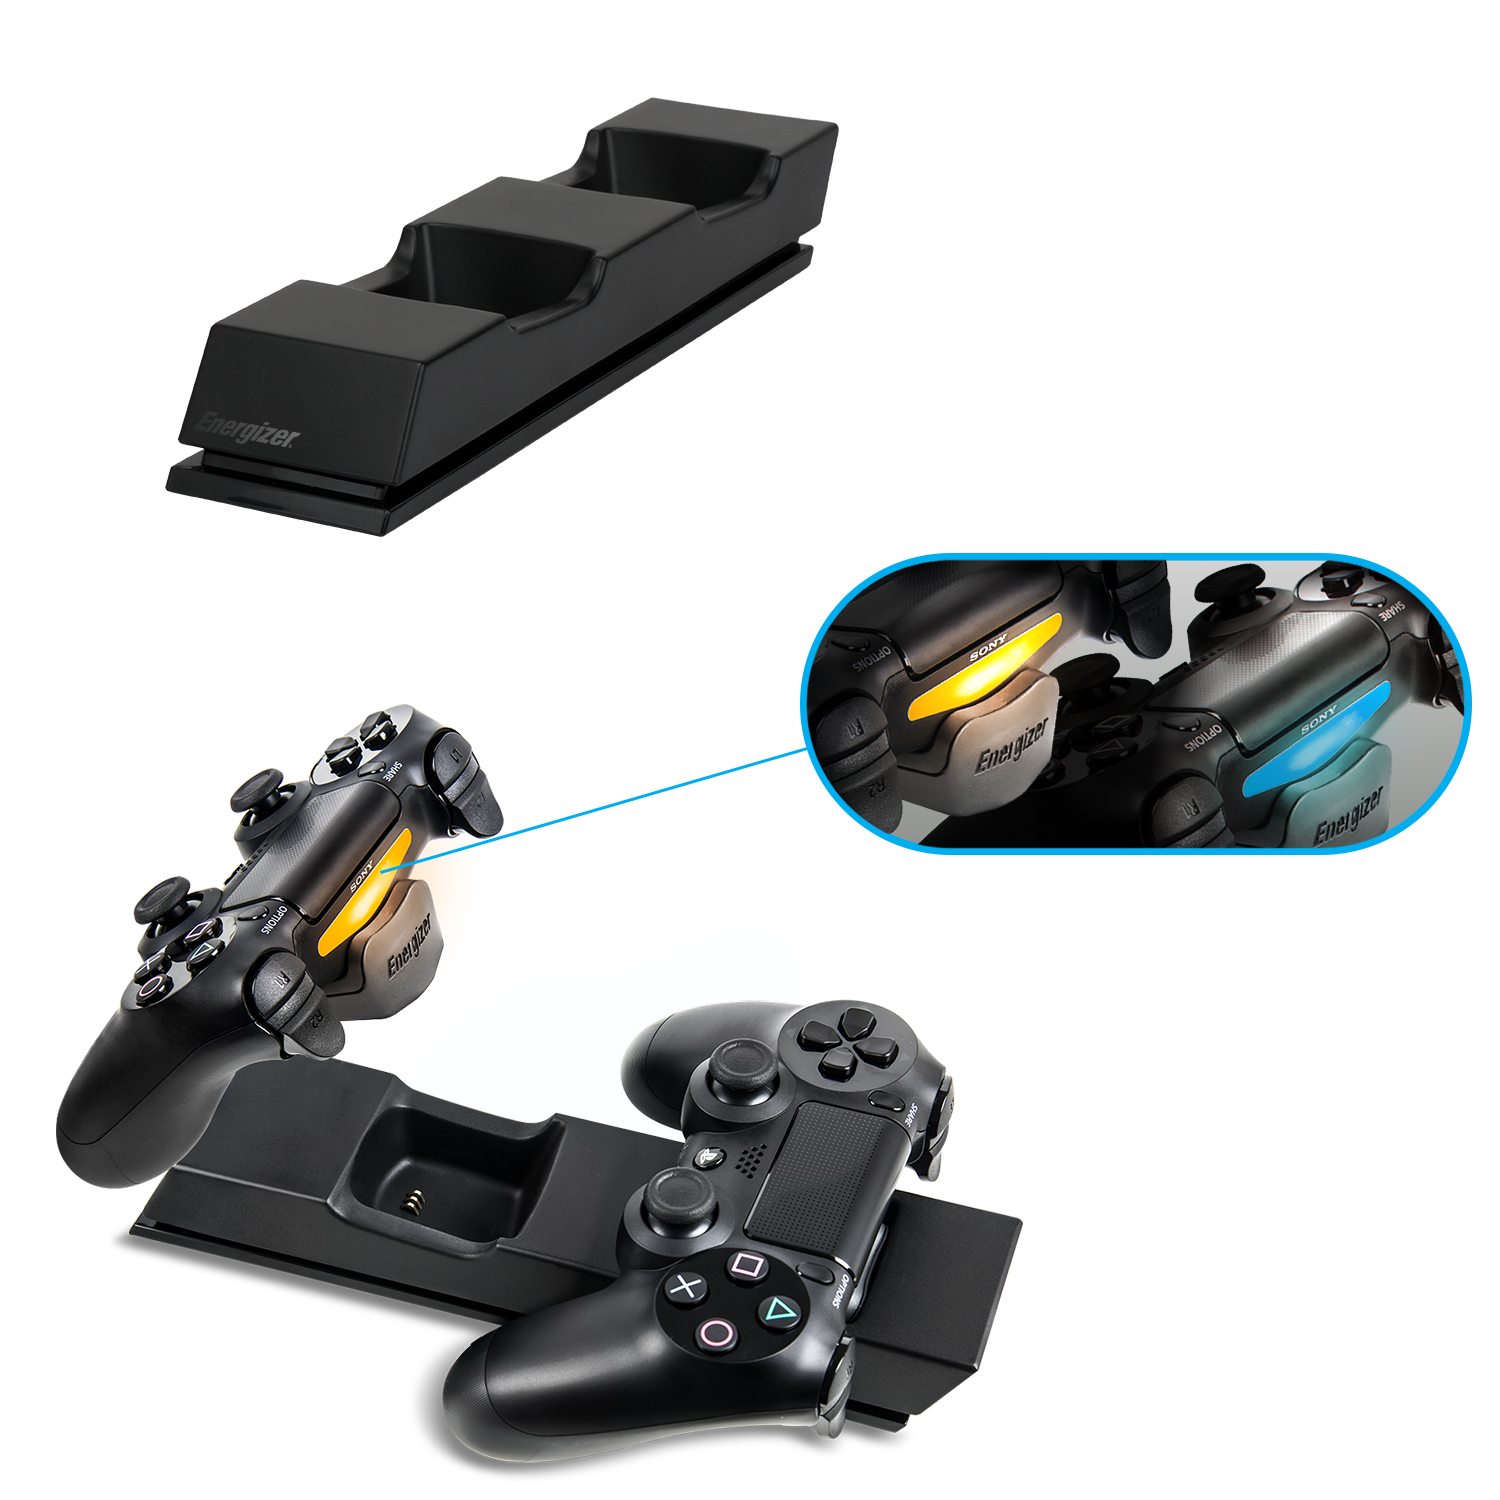 energizer xbox one charger instructions